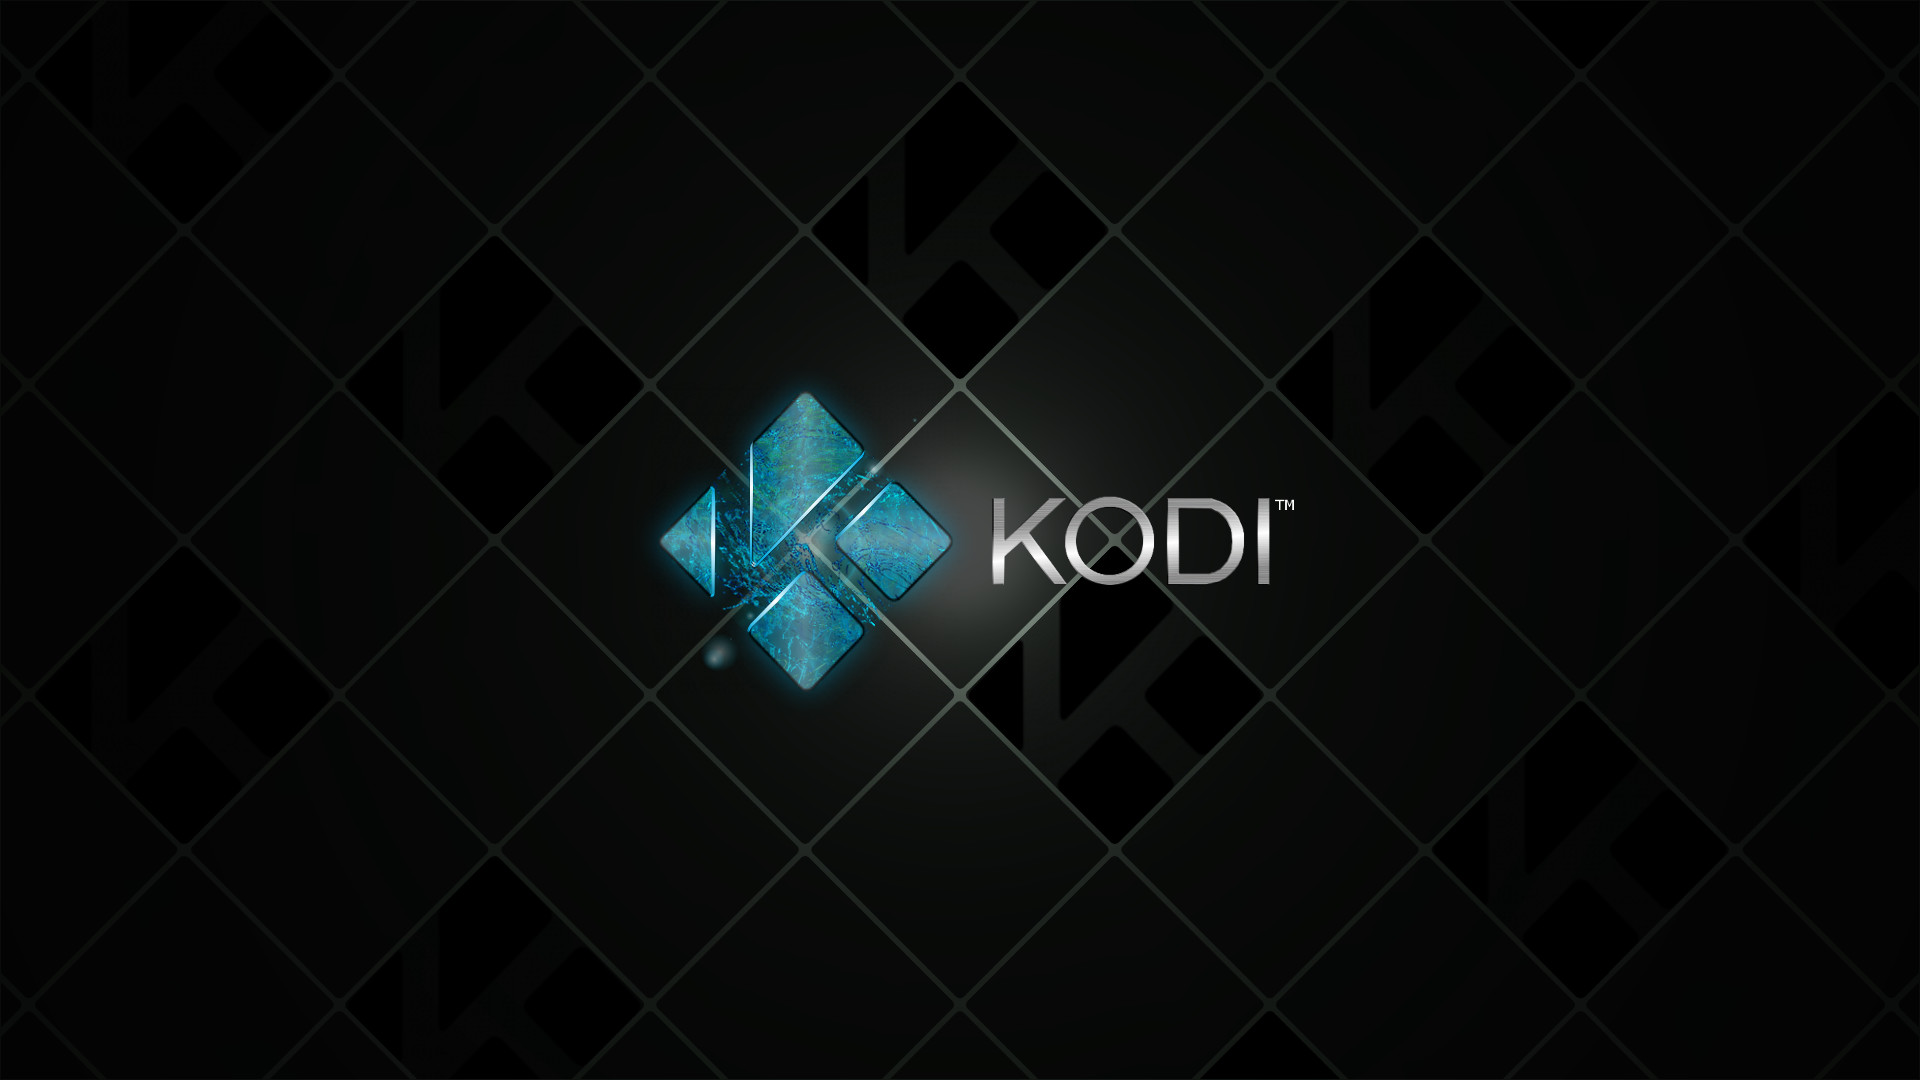 Kodi hd wallpaper 85 images for Where to get wallpaper